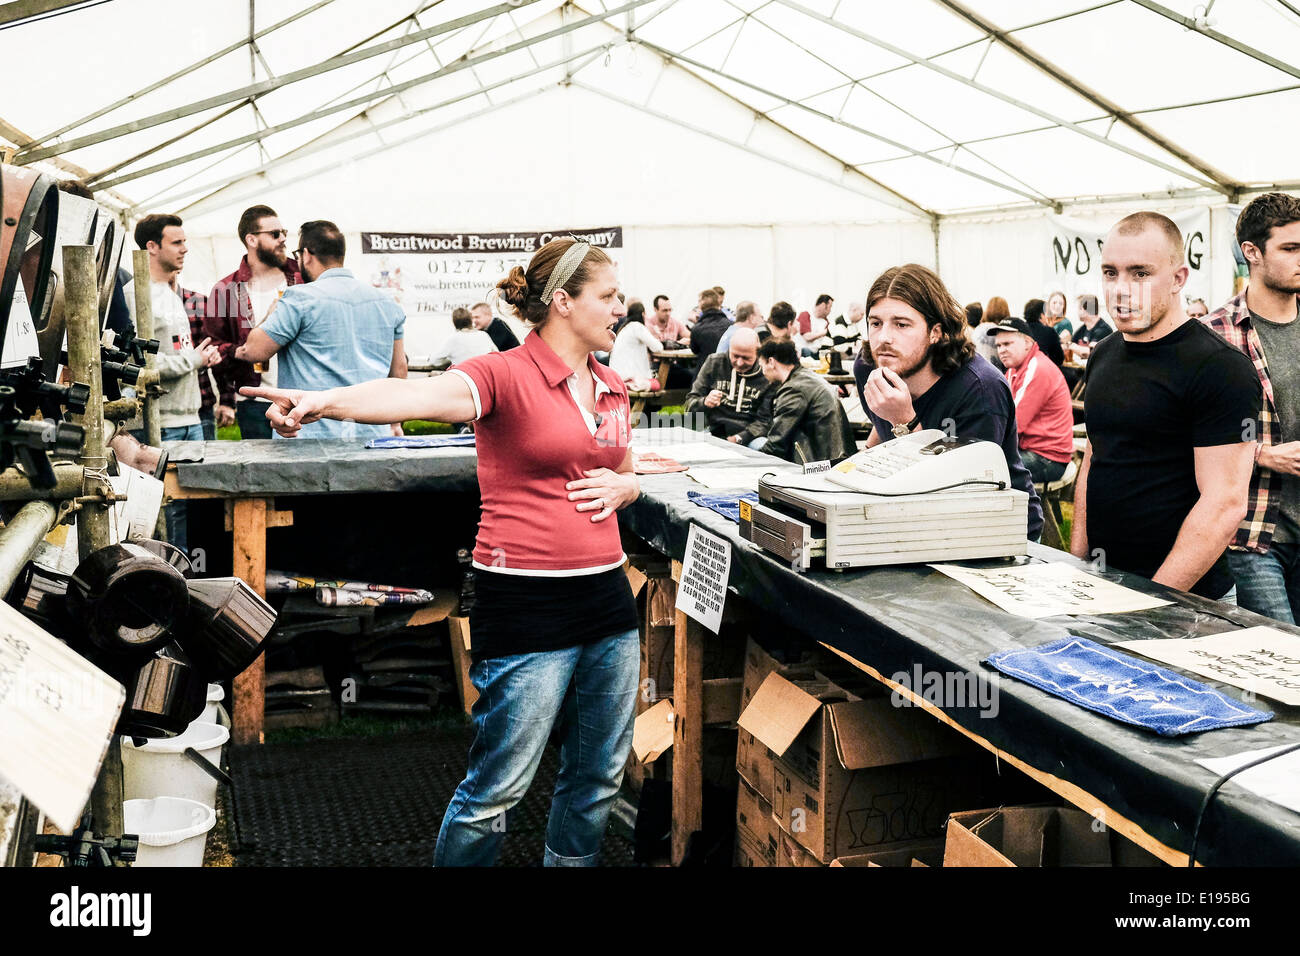 A member of staff advising a customer at the Hoop Beer Festival. - Stock Image